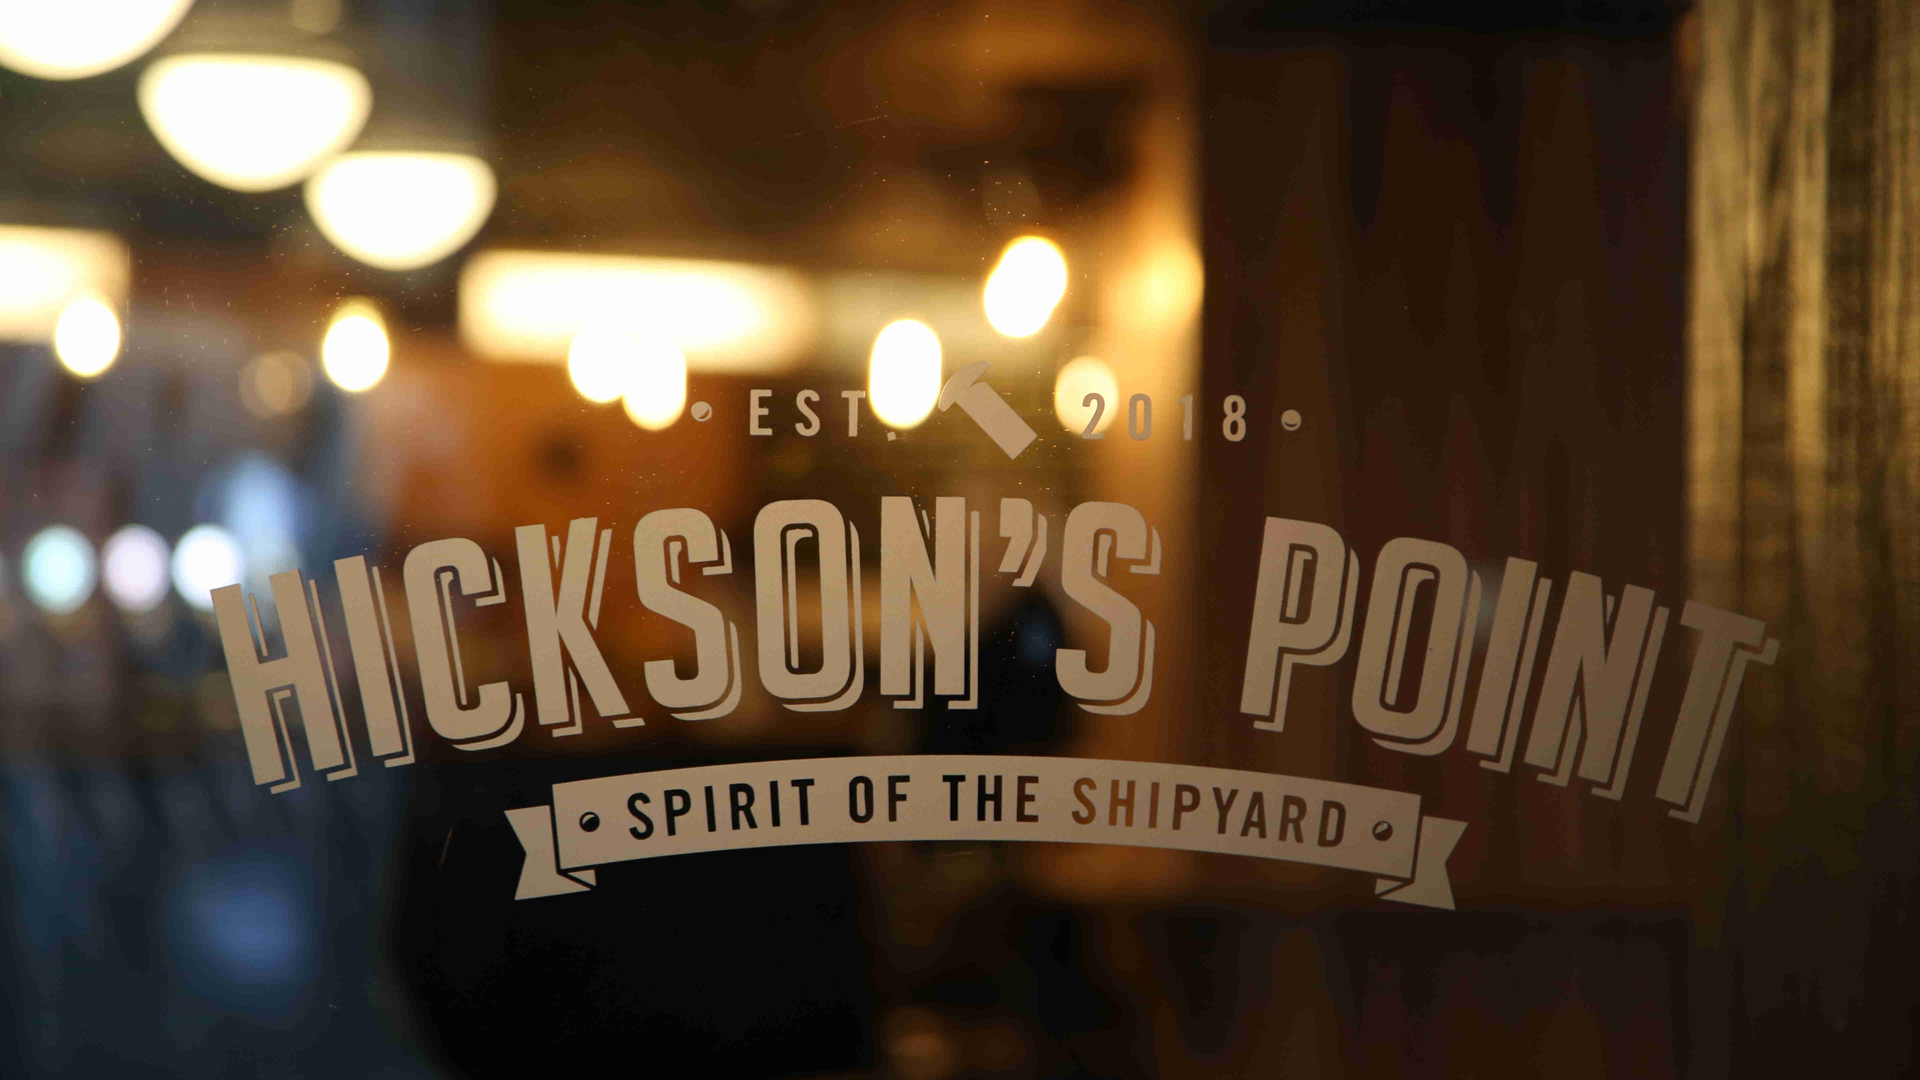 Hicksons Point